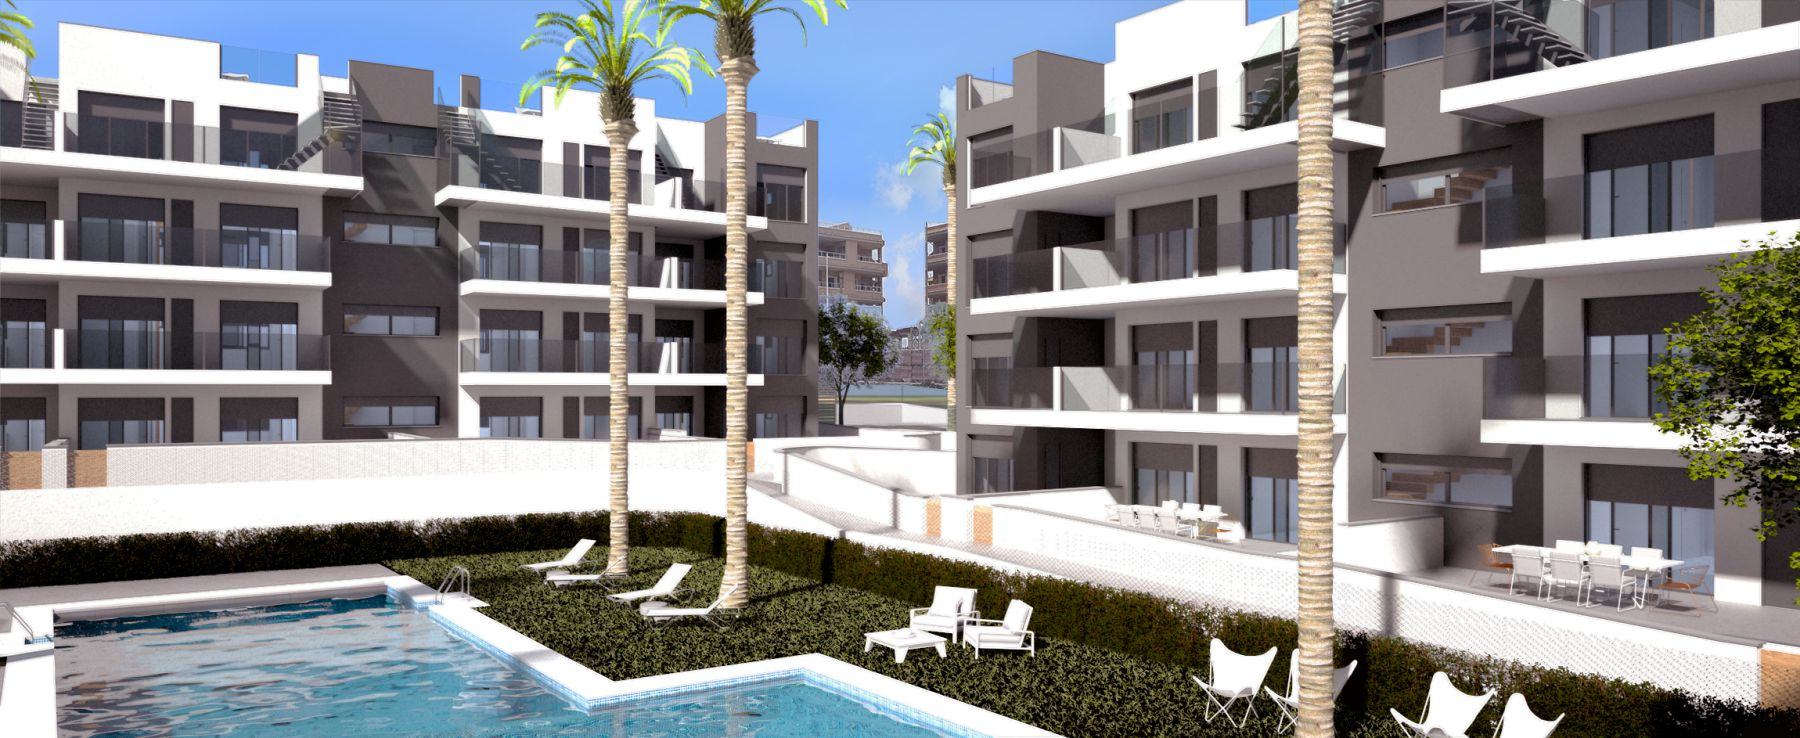 New Build 2 Bedrooms Apartments For Sale in Villamartín